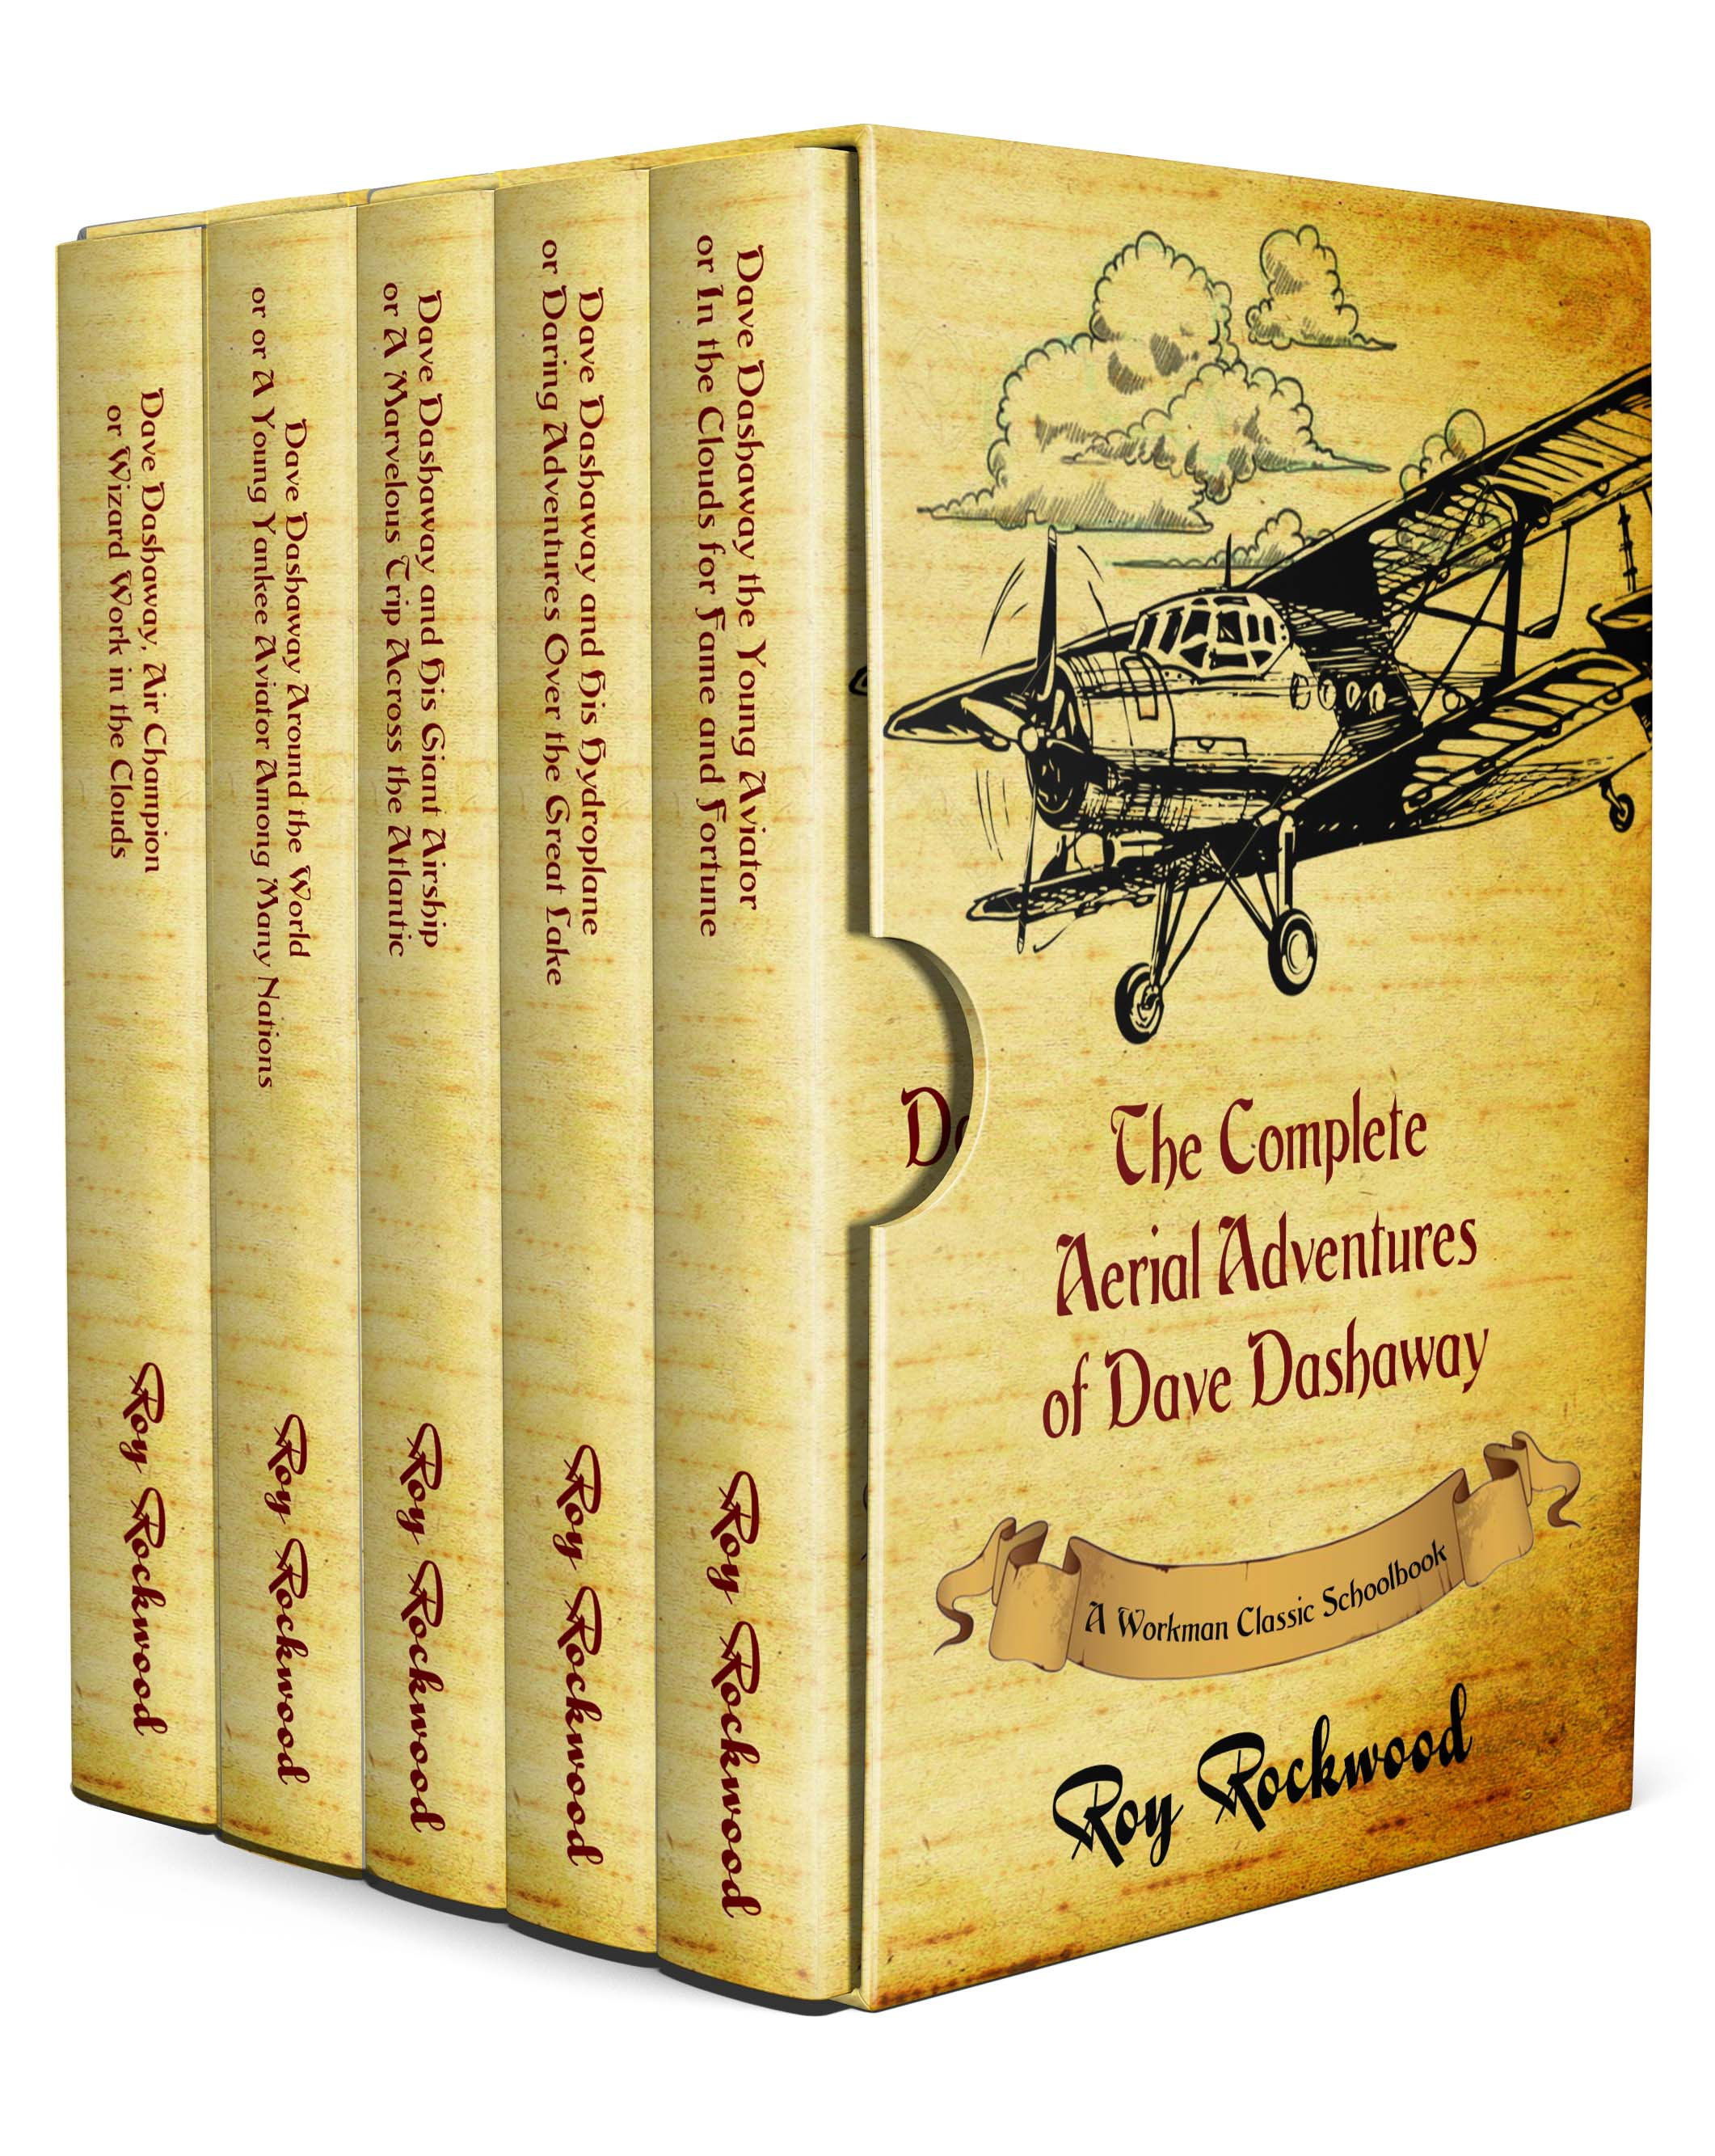 The Complete Aerial Adventures of Dave Dashaway